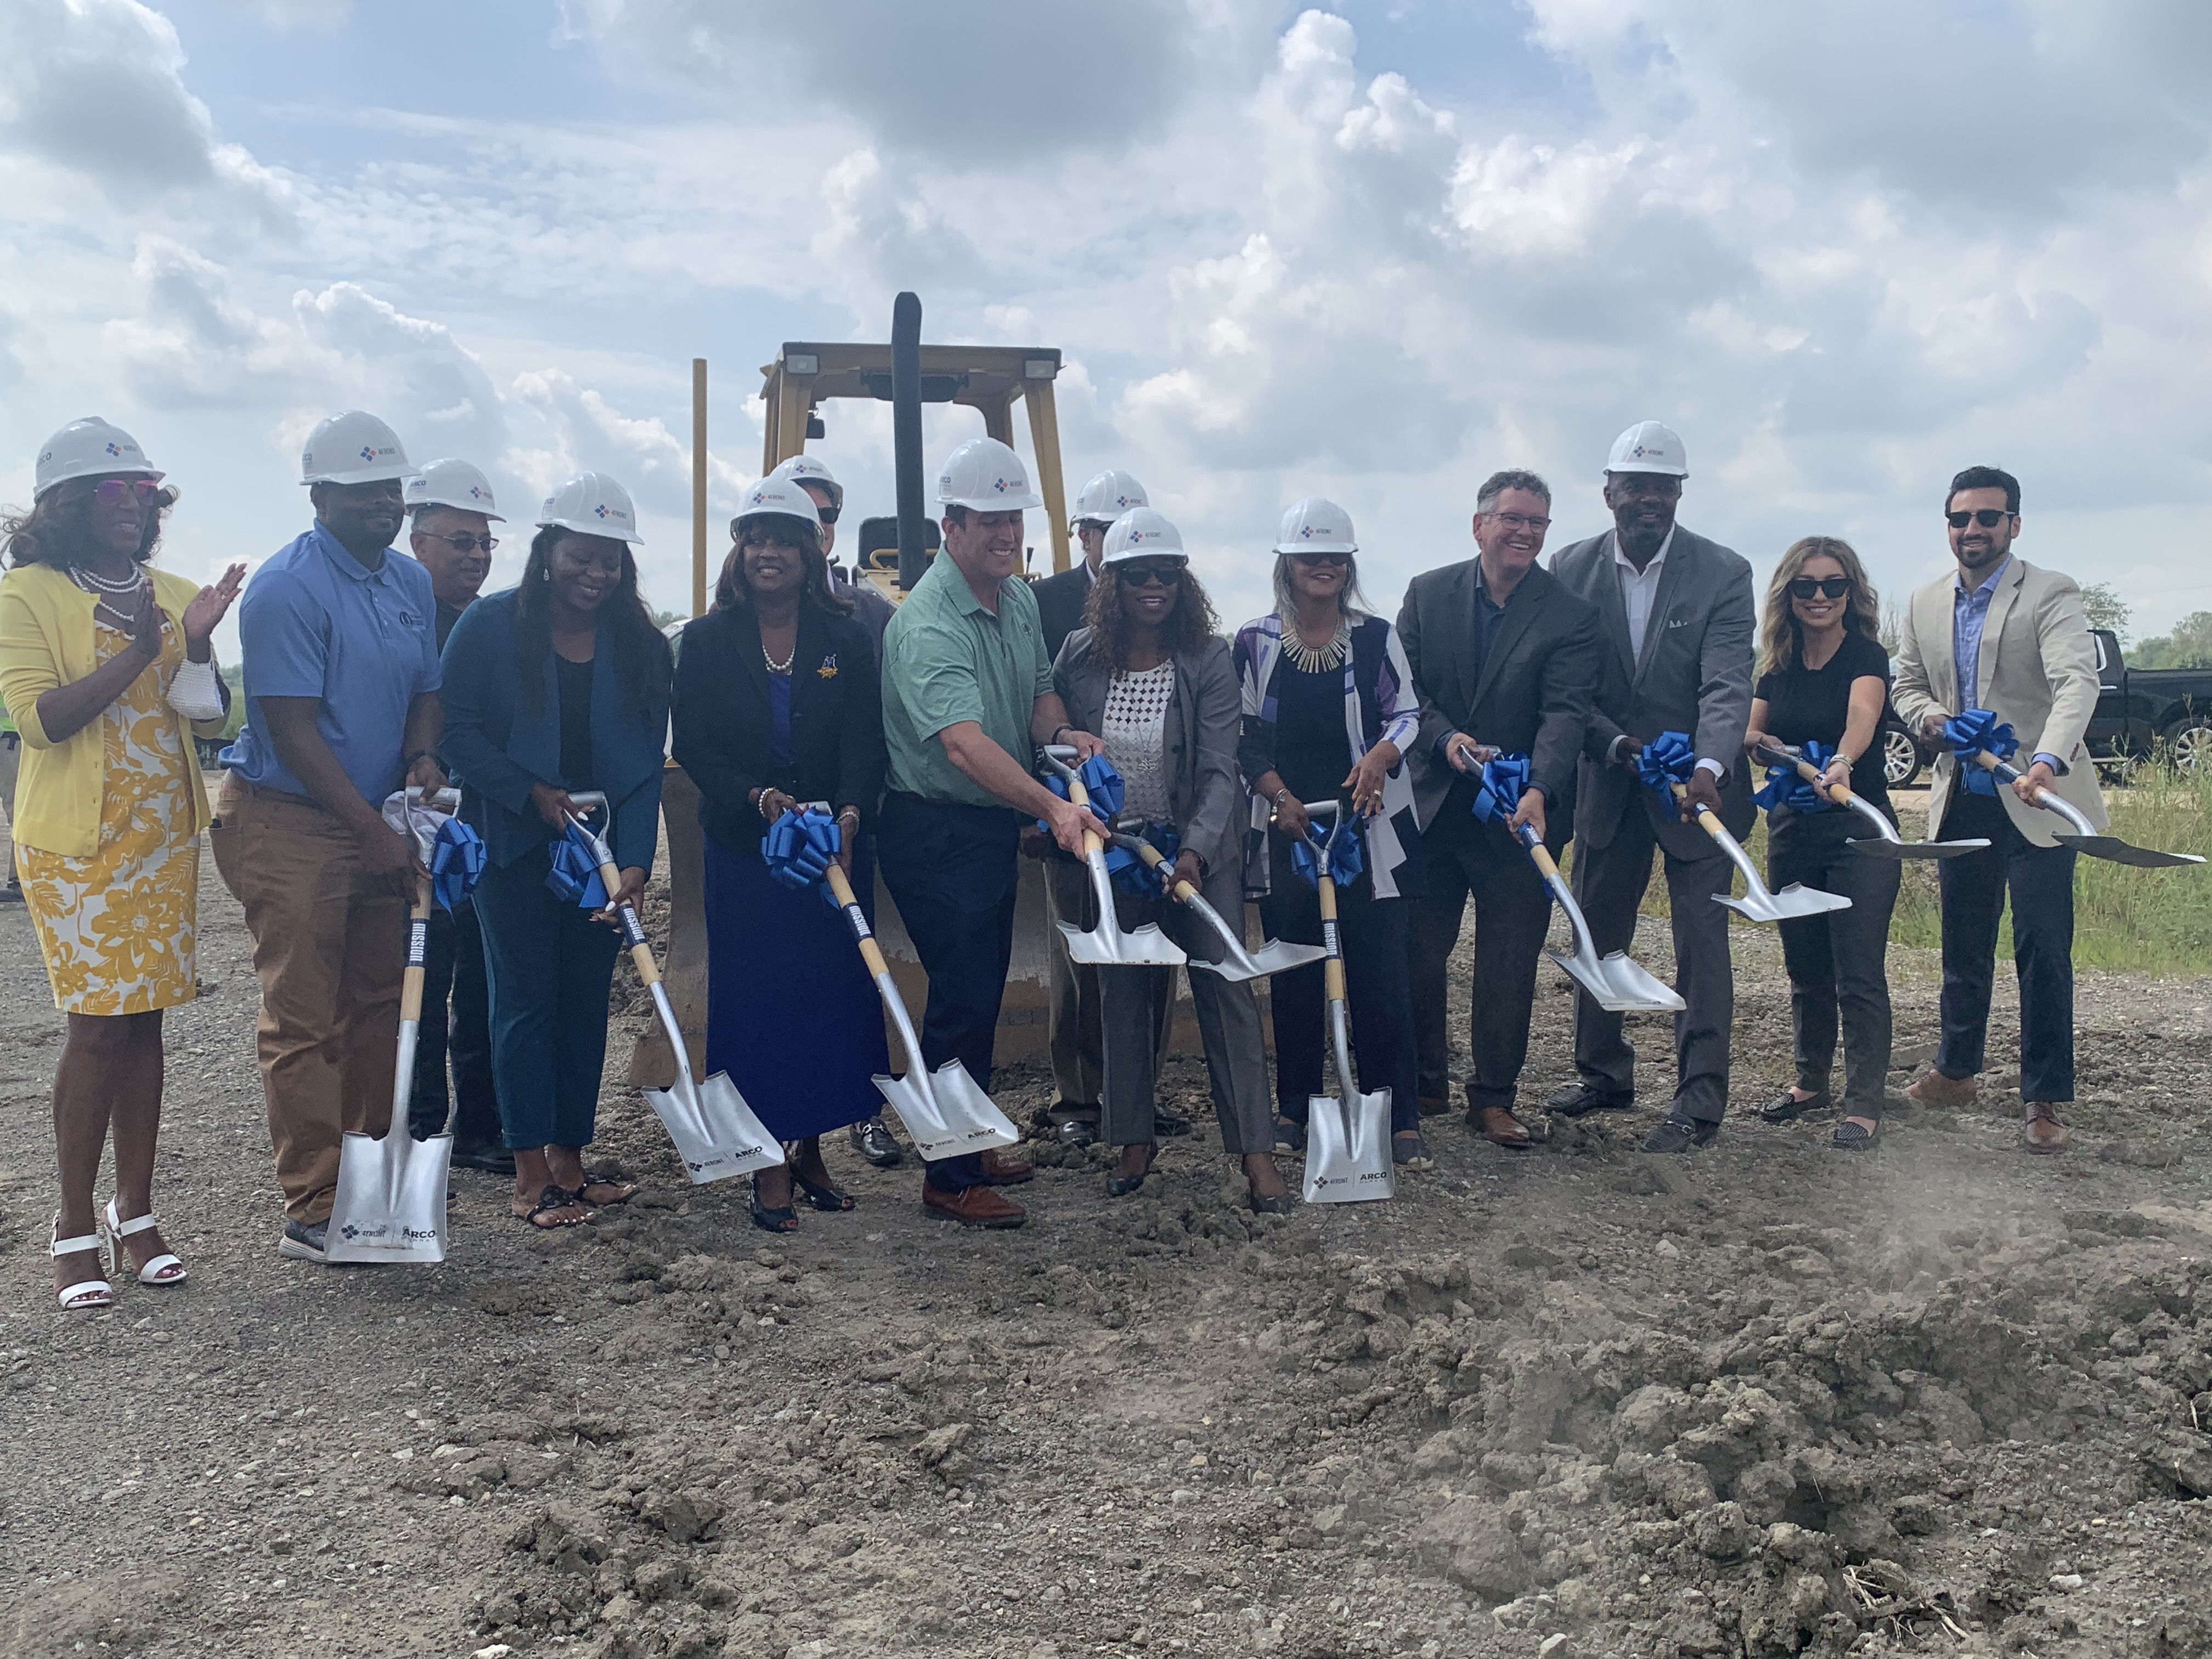 Elected officials and executives from 4Front Ventures broke ground Tuesday, Aug. 17, 2021 on the company's new cannabis cultivation center in Matteson.